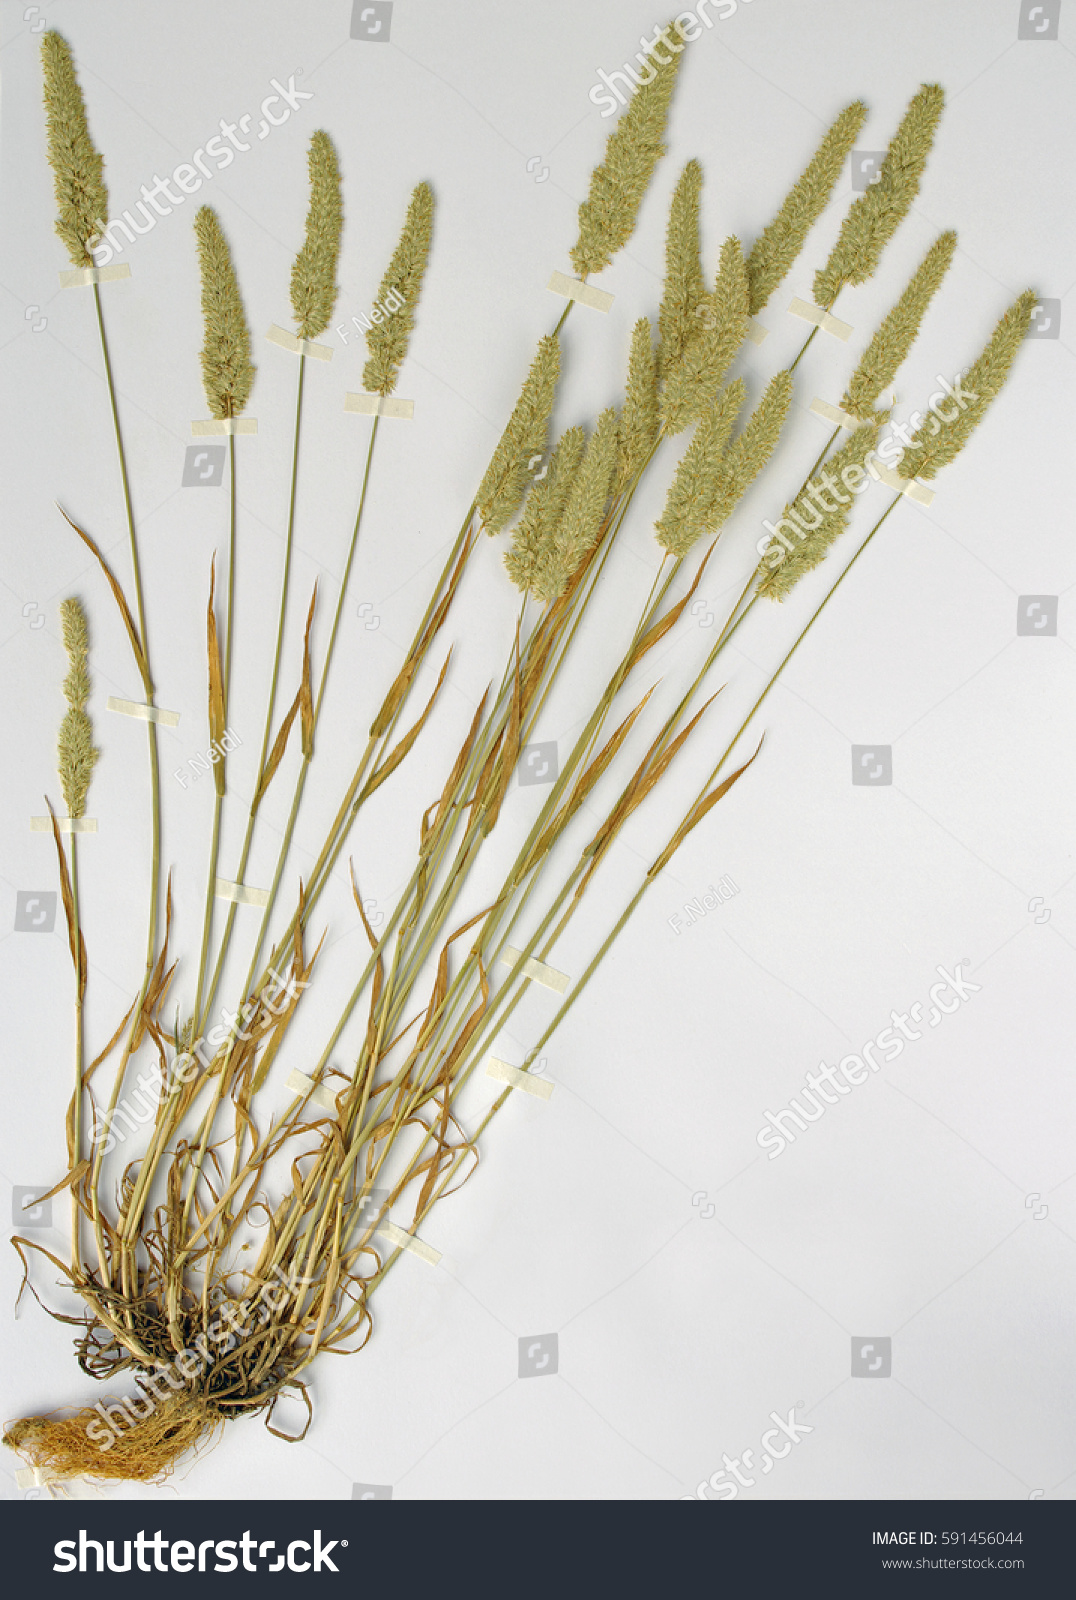 Herbarium sheet alopecurus foxtail grass family stock photo 591456044 shutterstock - Model herbarium ...